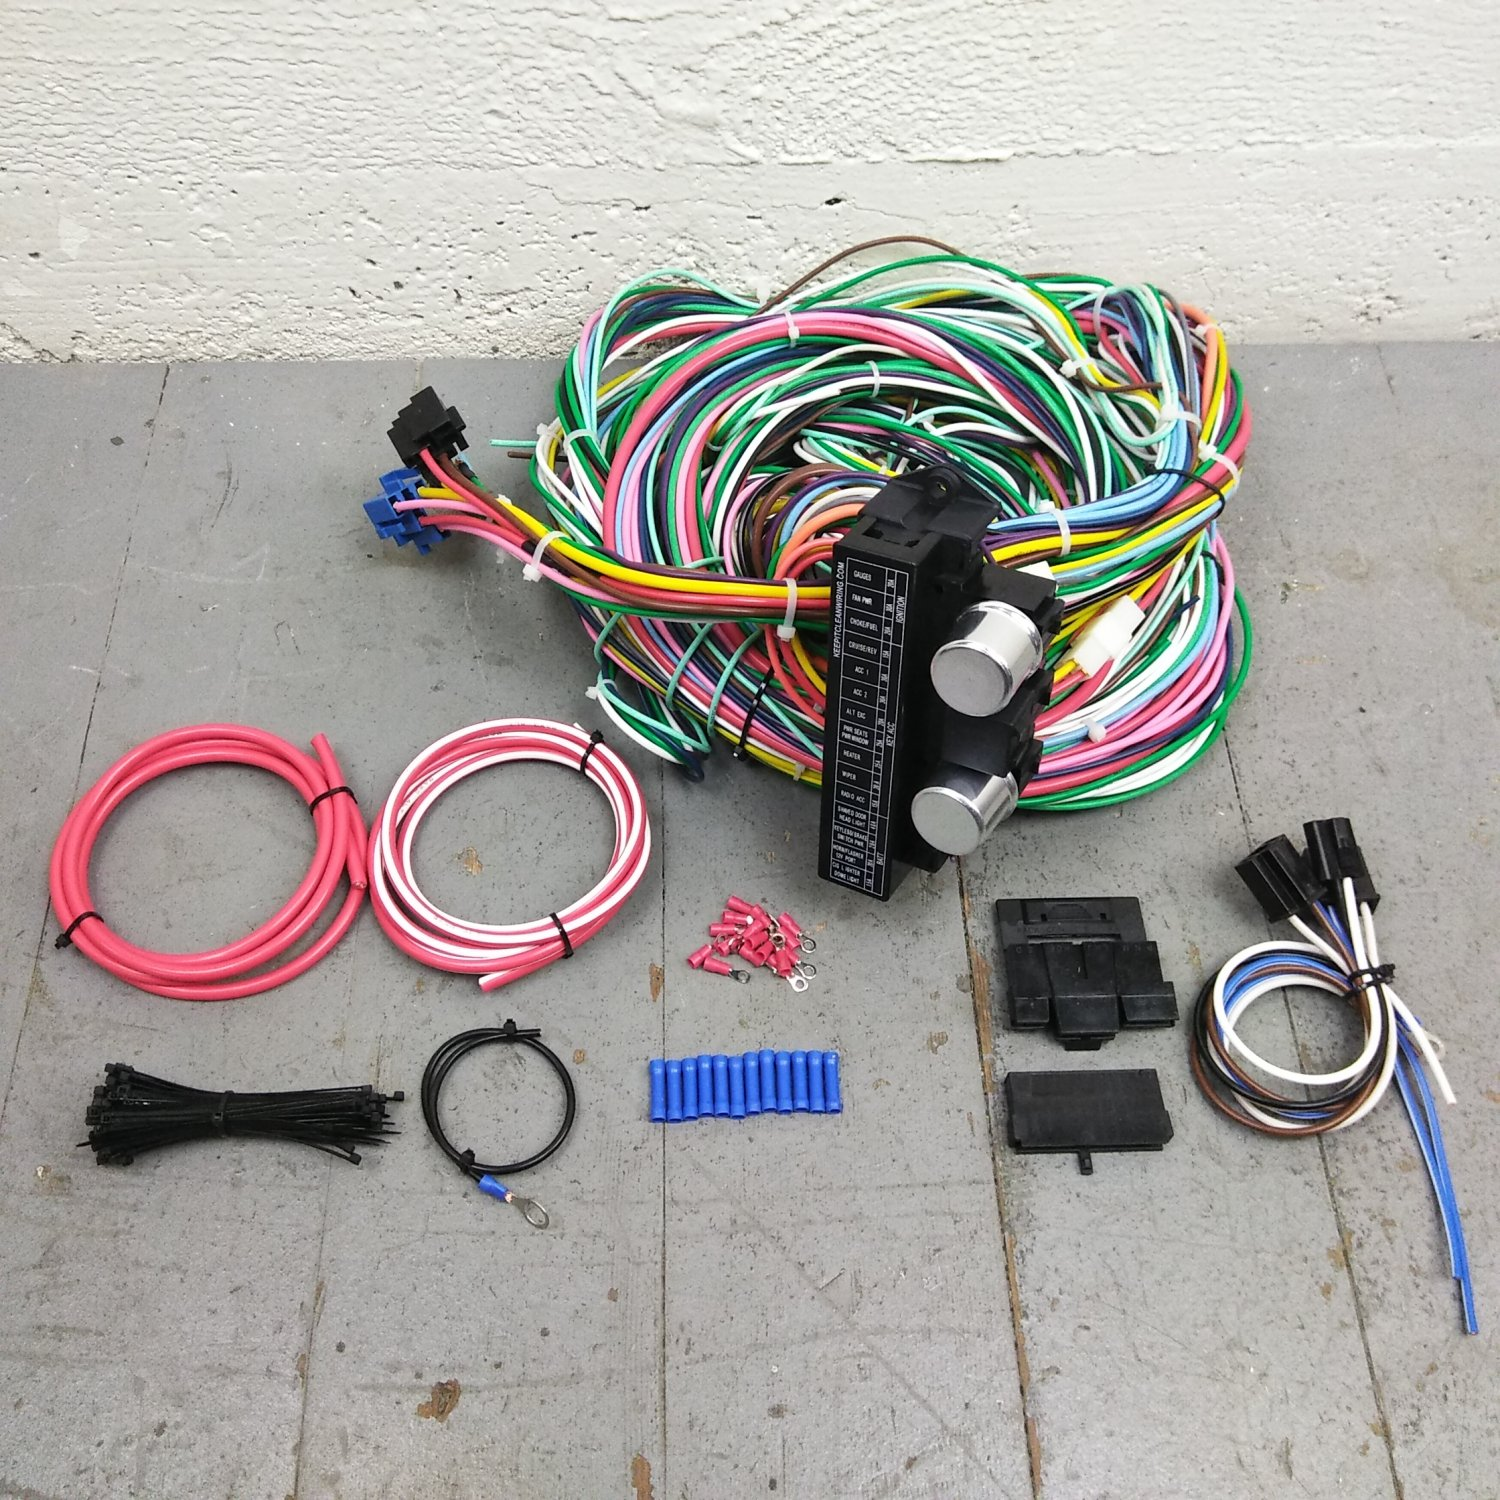 hight resolution of 1955 1959 chevy truck wire harness upgrade kit fits painless complete terminal bar product description c